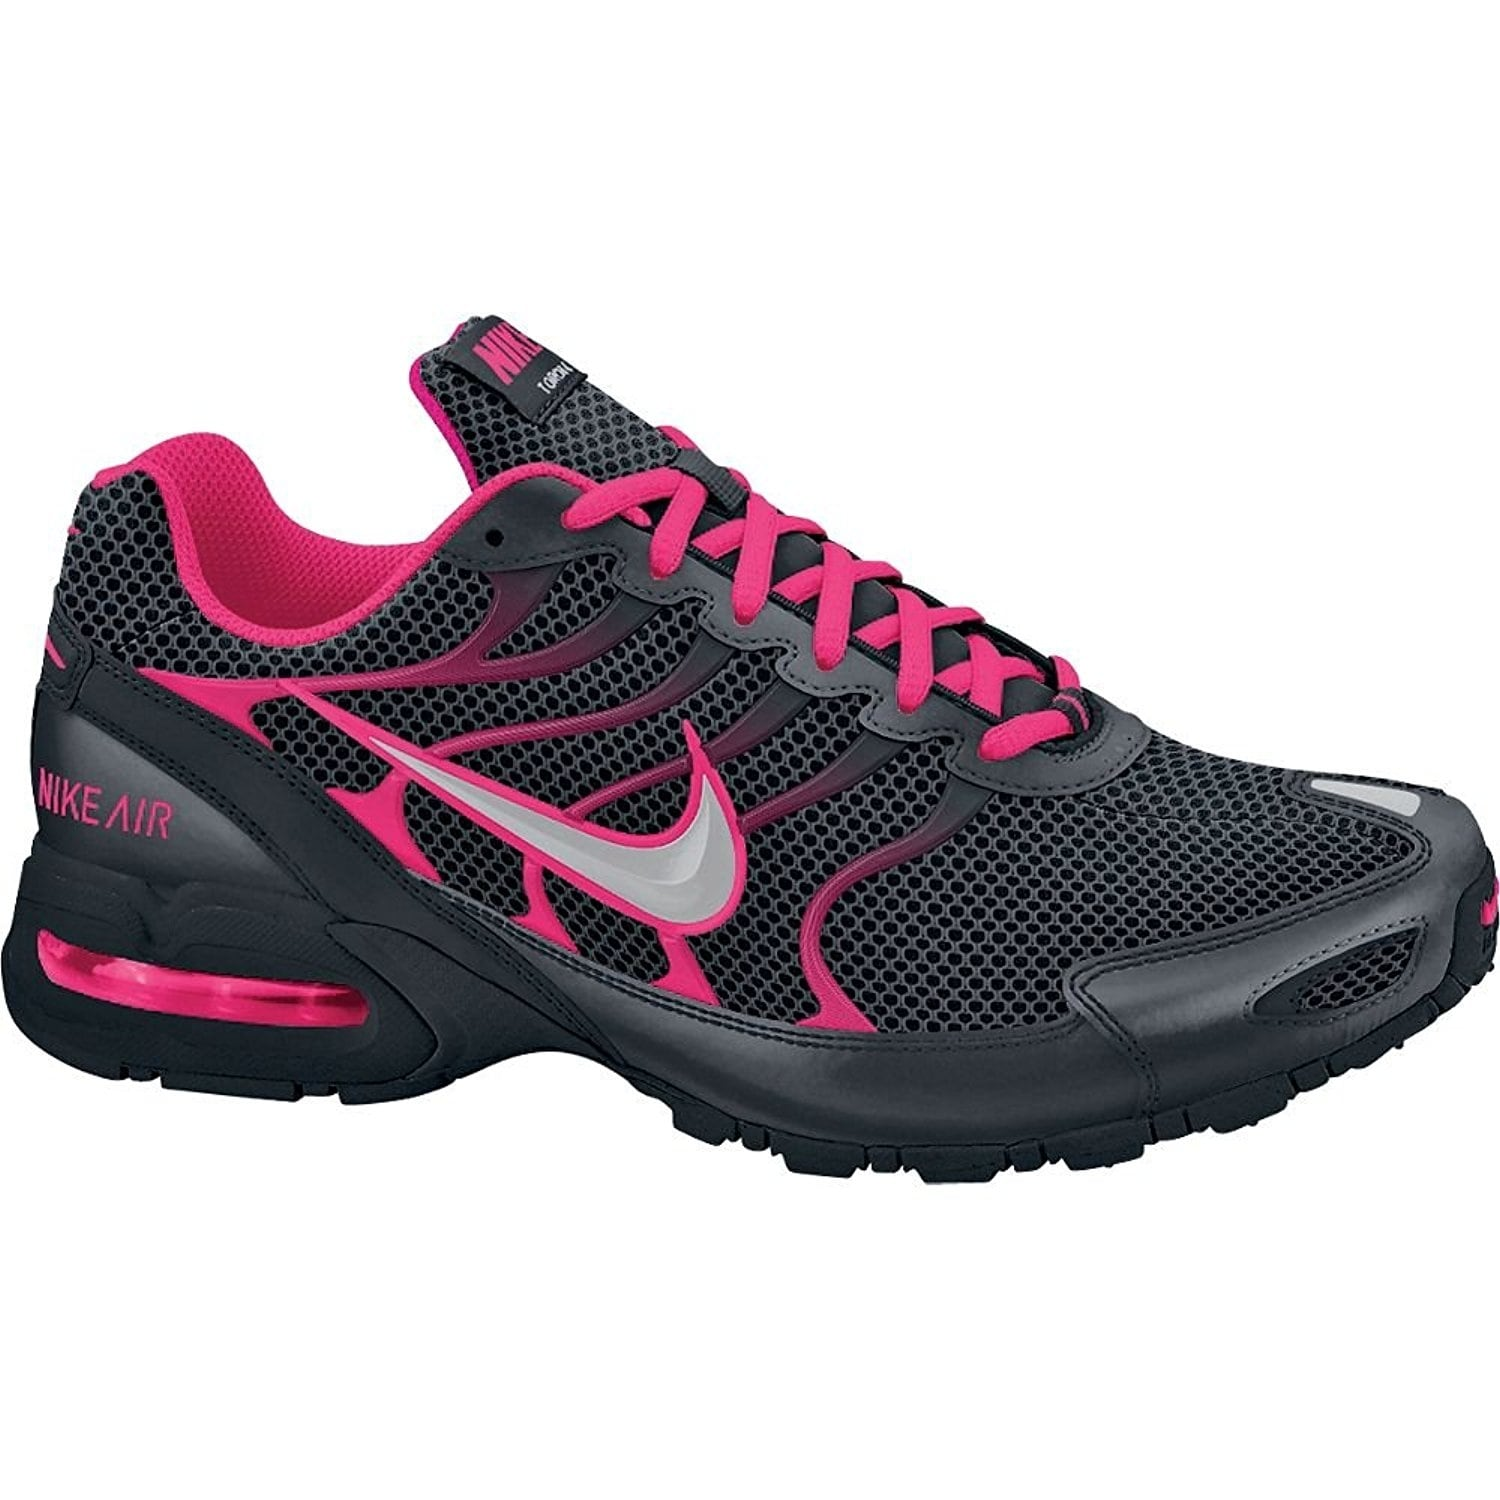 5cda1e0ed280d Shop Nike Air Max Torch 4 Women s Running Shoes - Free Shipping Today -  Overstock - 17949961